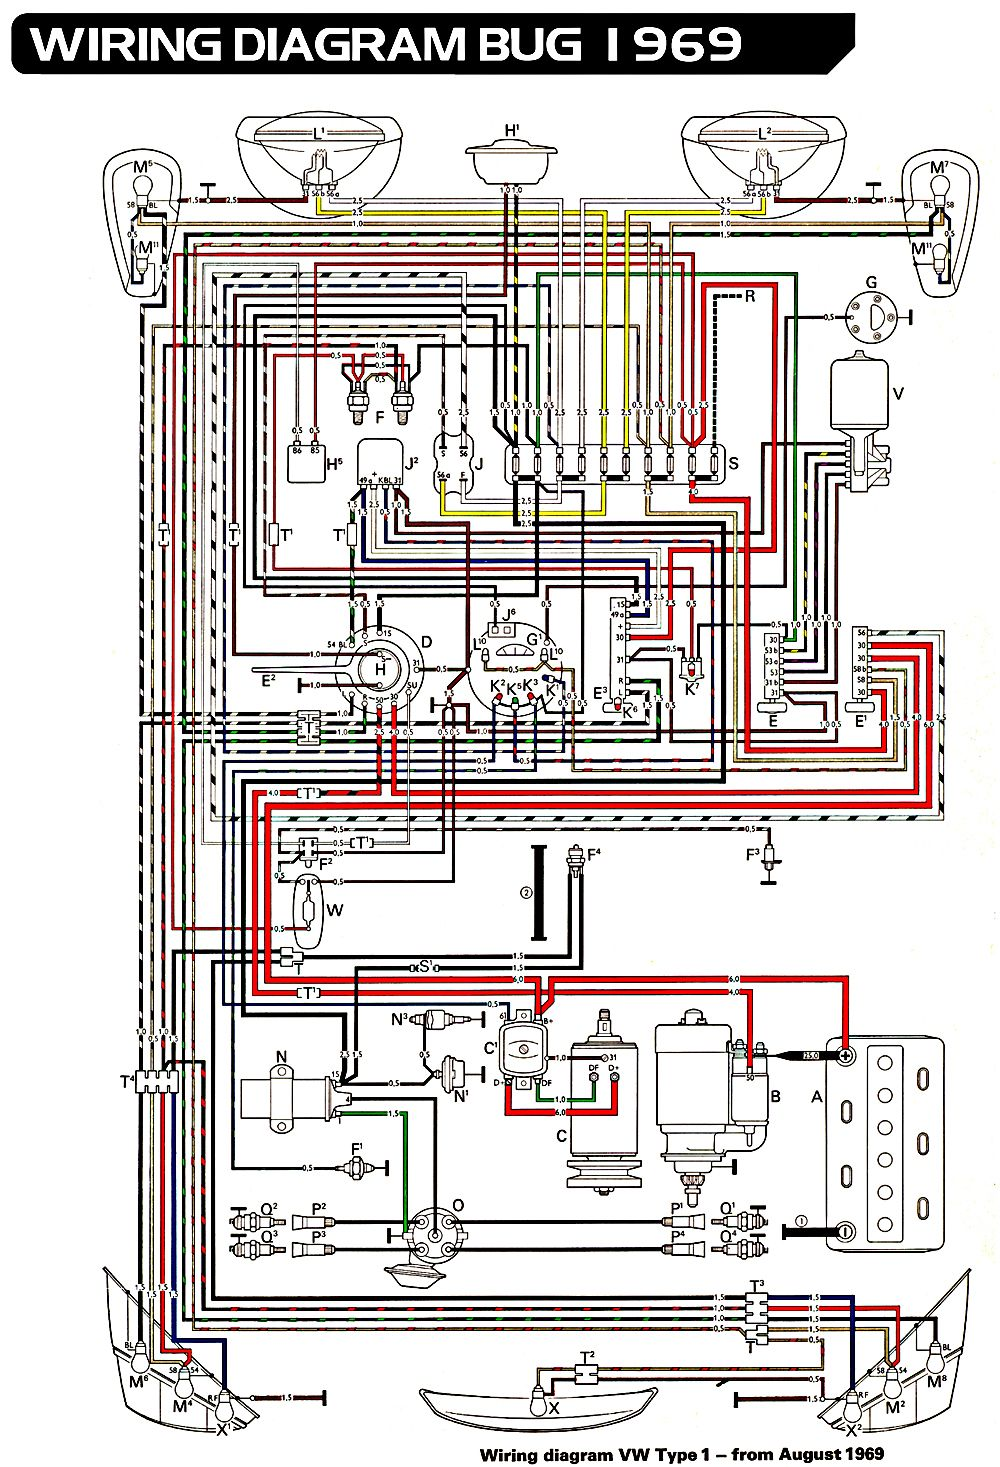 1974 vw bug wiring wiring diagram 74 VW Beetle MPG 1974 vw bug wiring